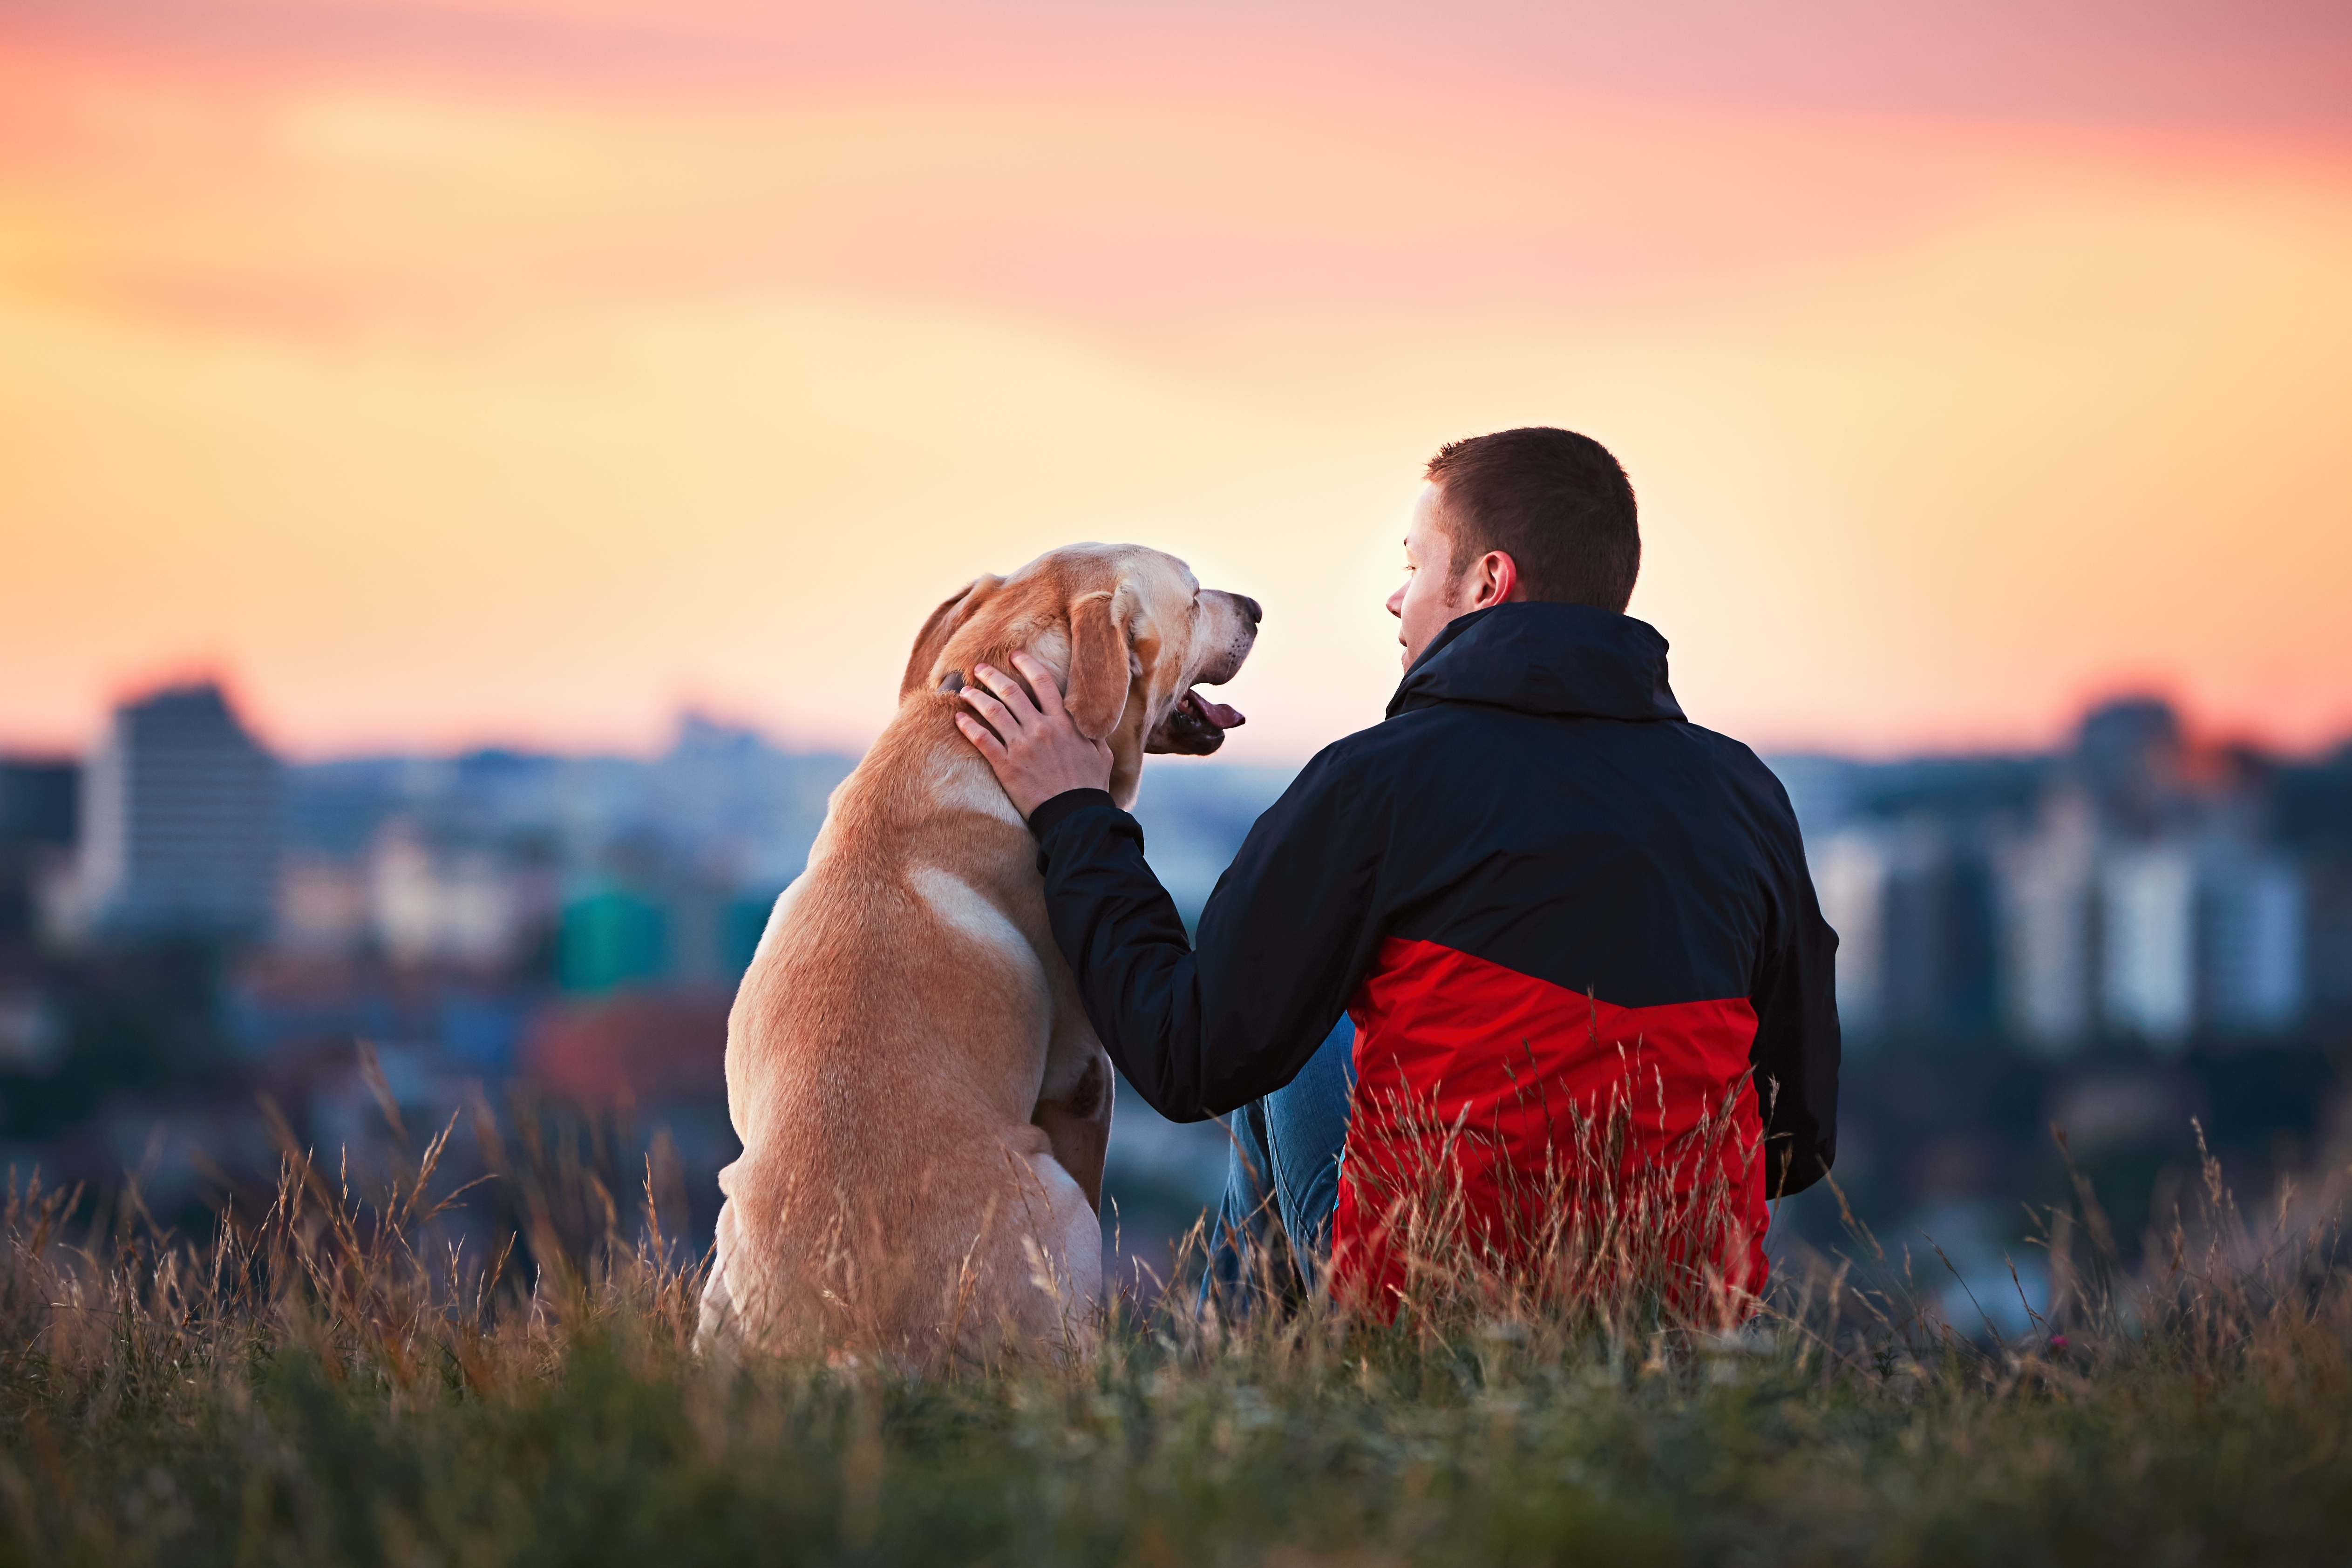 Labrador retriever sitting in the grass with owner